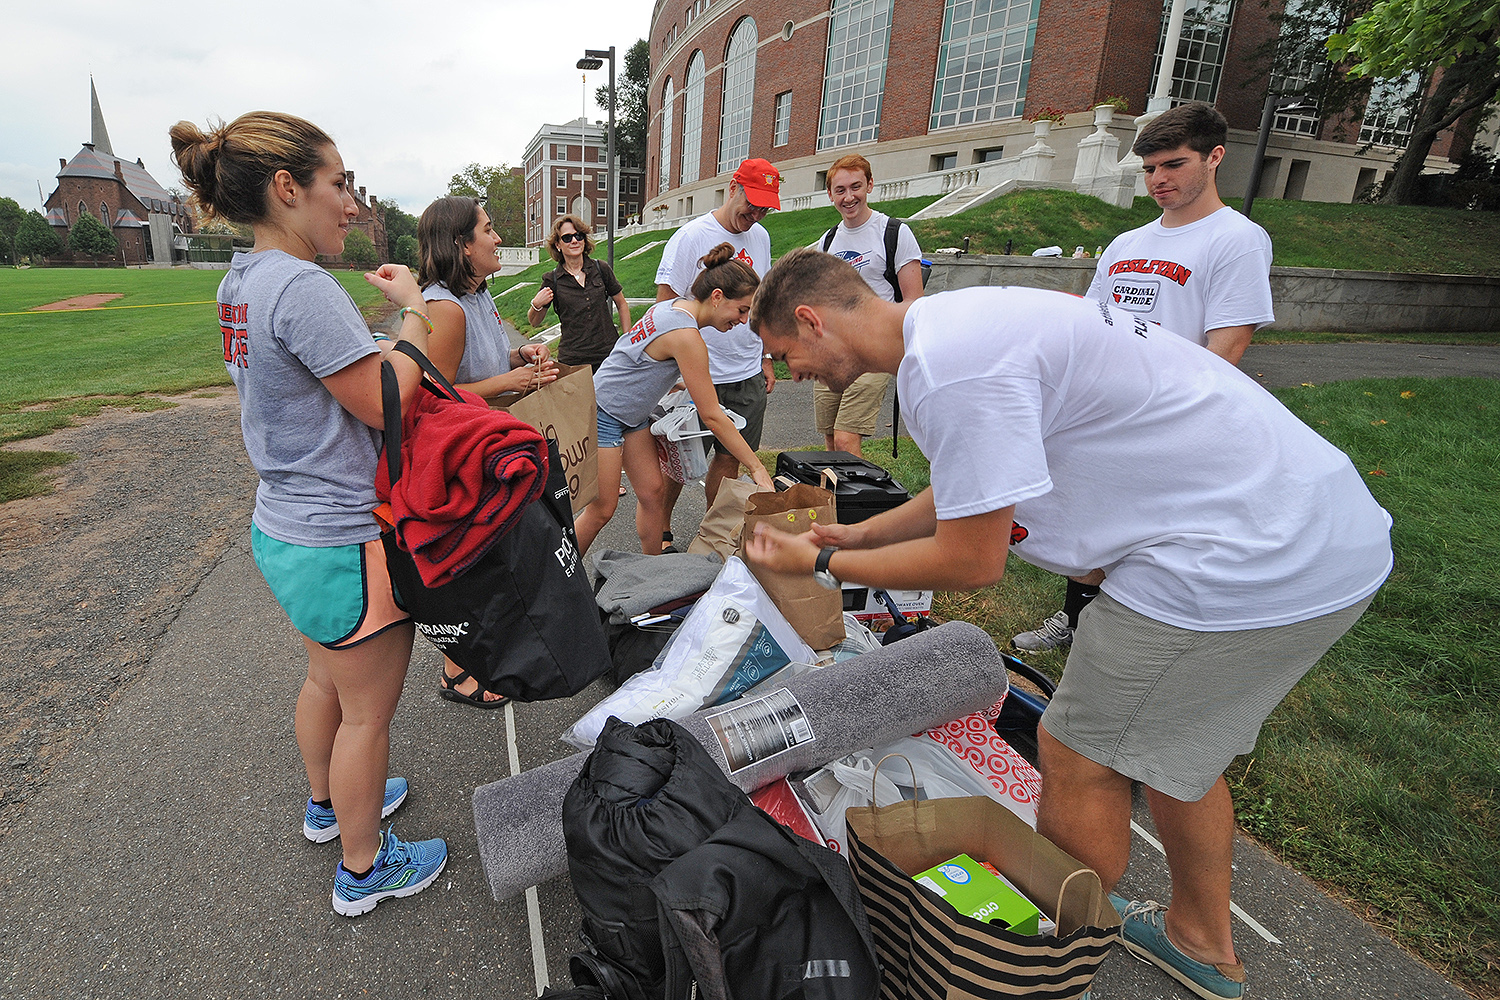 Several Wesleyan student athletes, upperclassmen and Wesleyan staff and faculty helped new students move their belongings on Arrival Day. Aug. 31.